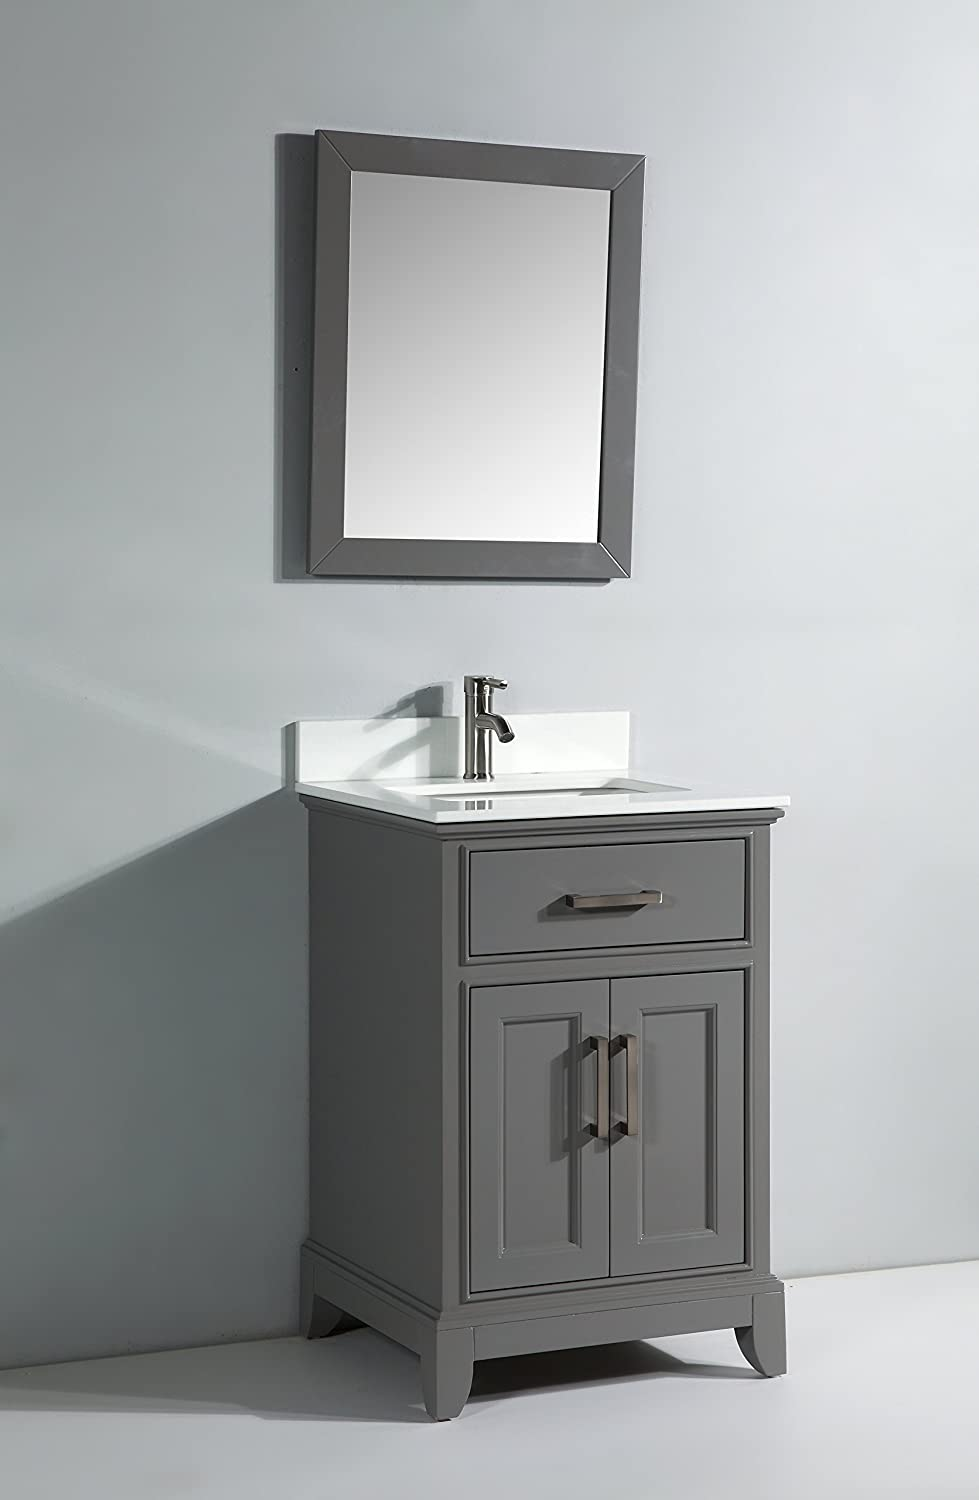 How to replace a bathroom faucet with lowe s 171 plumbing amp electric - Vanity Art 24 Inch Single Sink Bathroom Vanity Set With White Phoenix Stone Top Drain And Mirror Gray Amazon Com